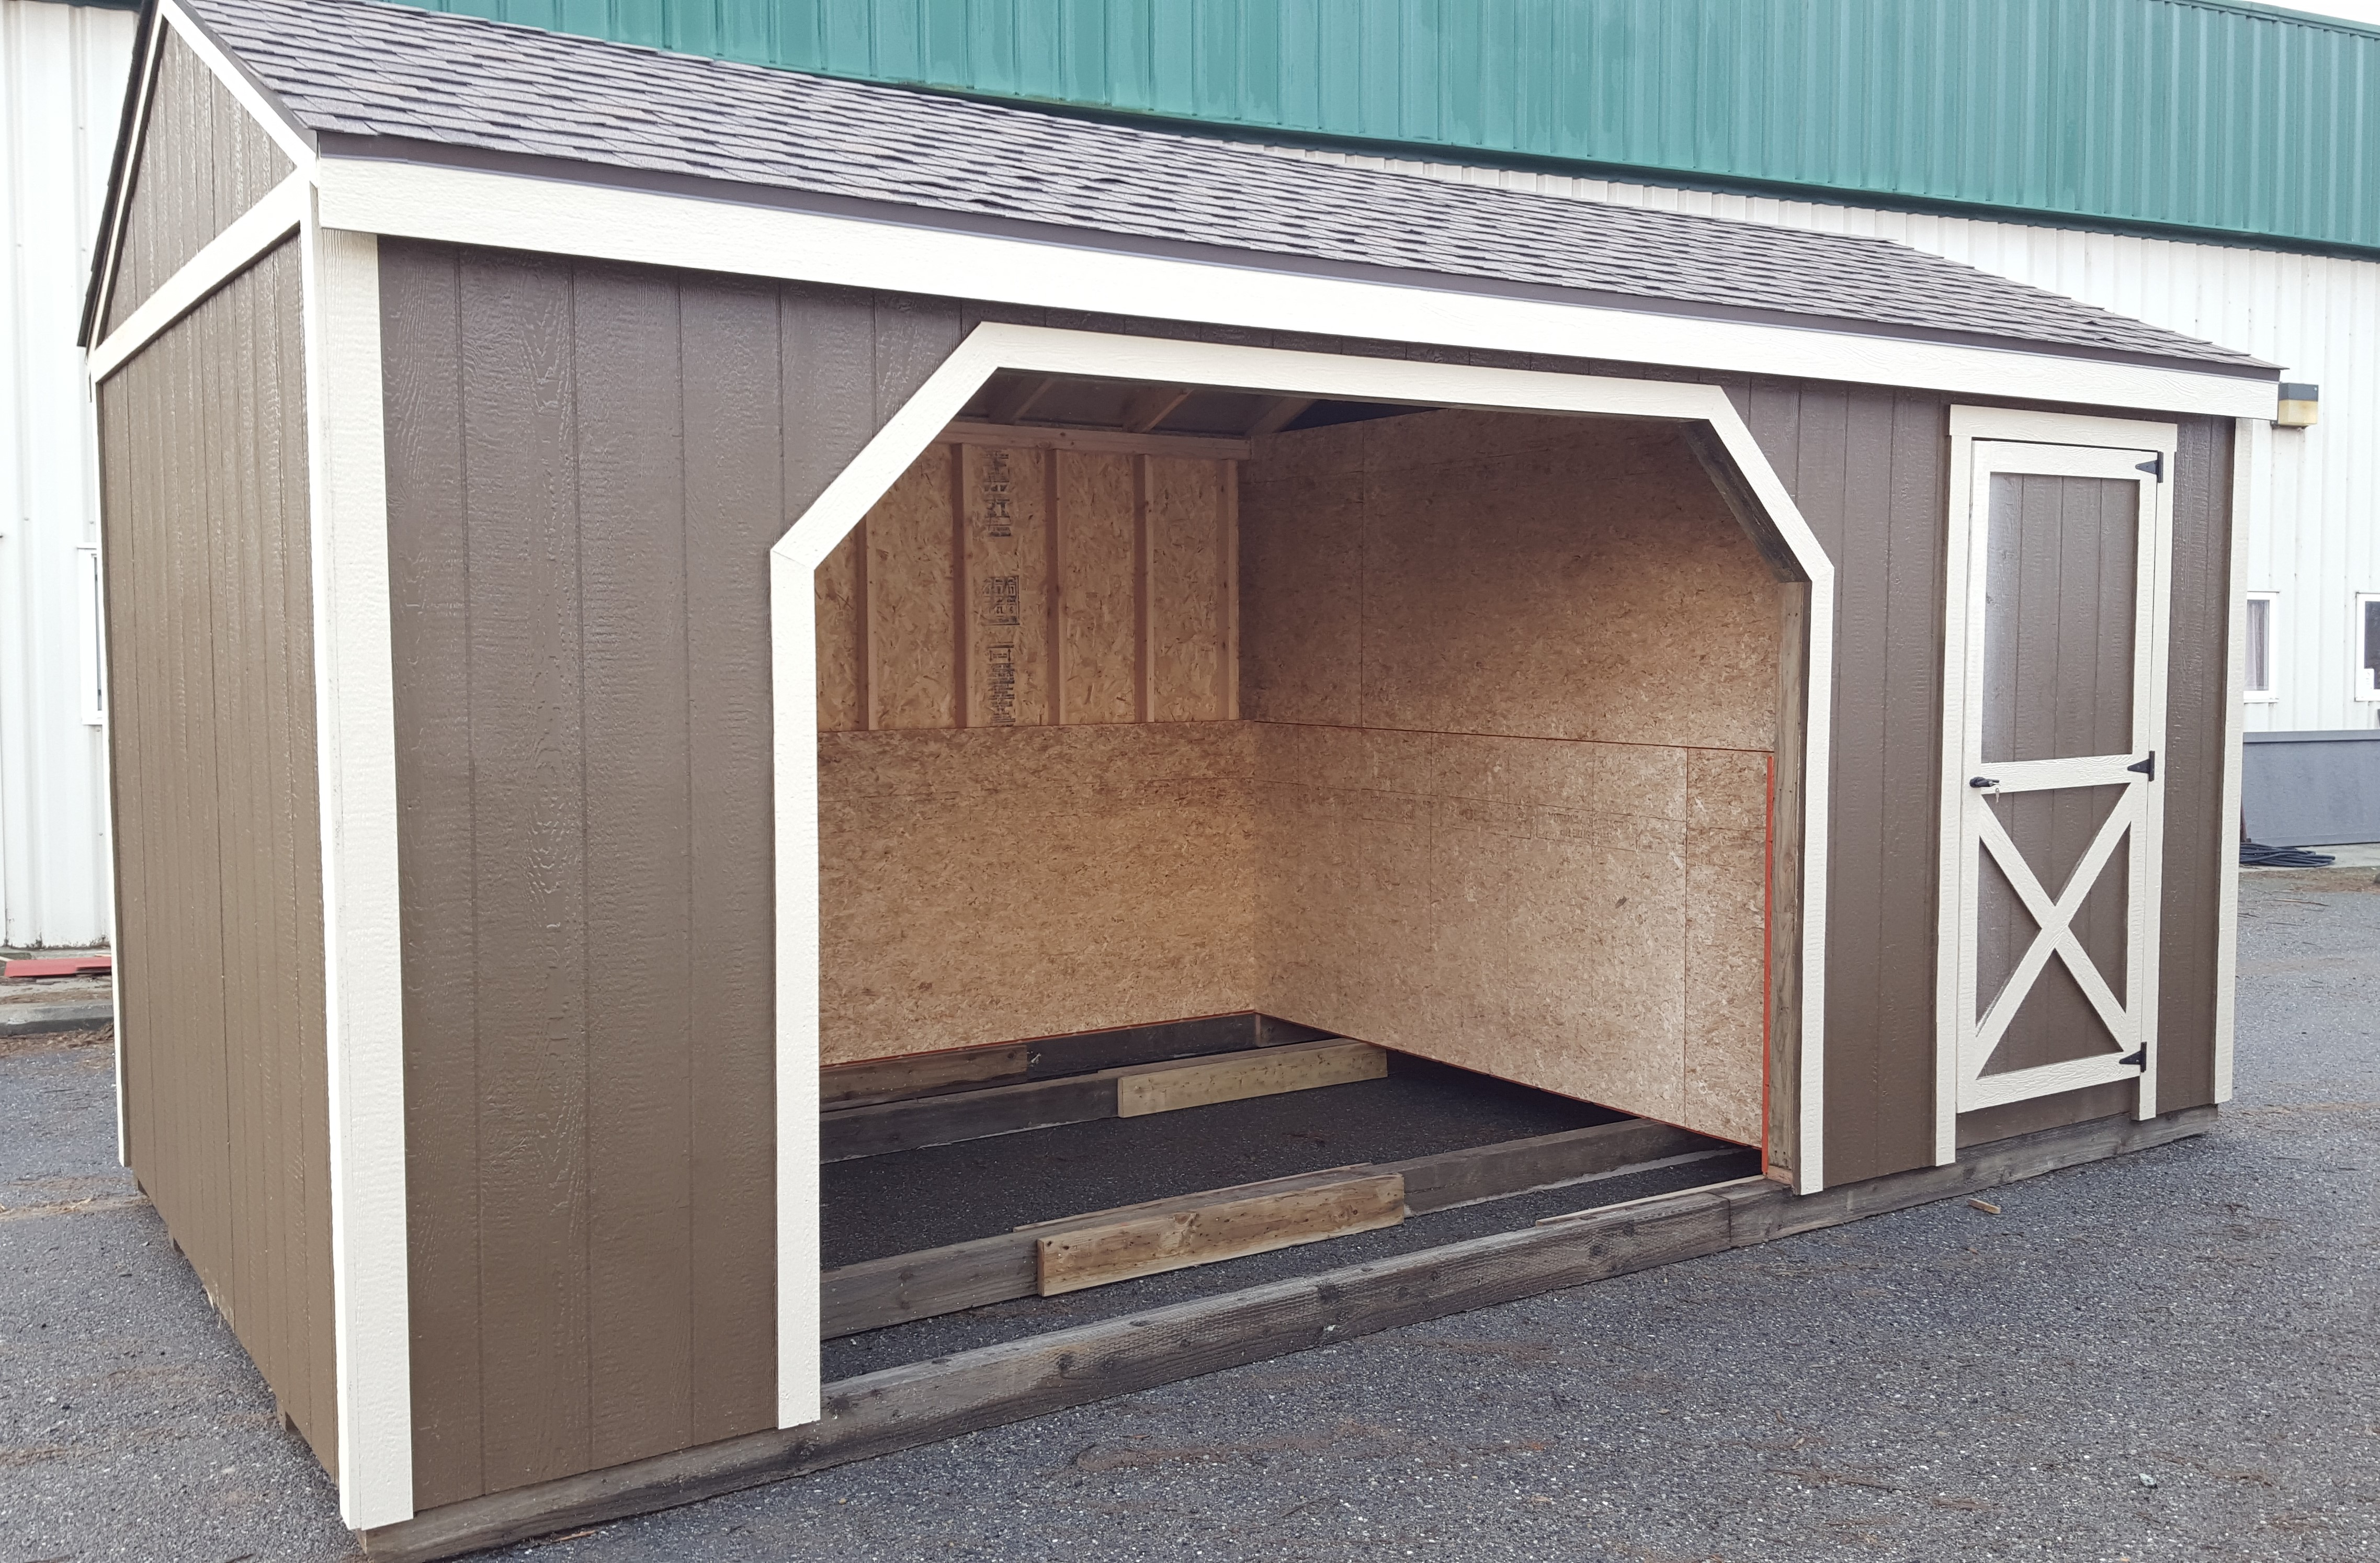 Run-in sheds have 8ft walls with interior walls lined up to 4ft. Offered in several sizes, 10×12, 10×16, 10×20, 10×24, 10×30, 10×32 and starting at $2160.  Tack or feed room addition for $450, we can even put in quick drop feed door.